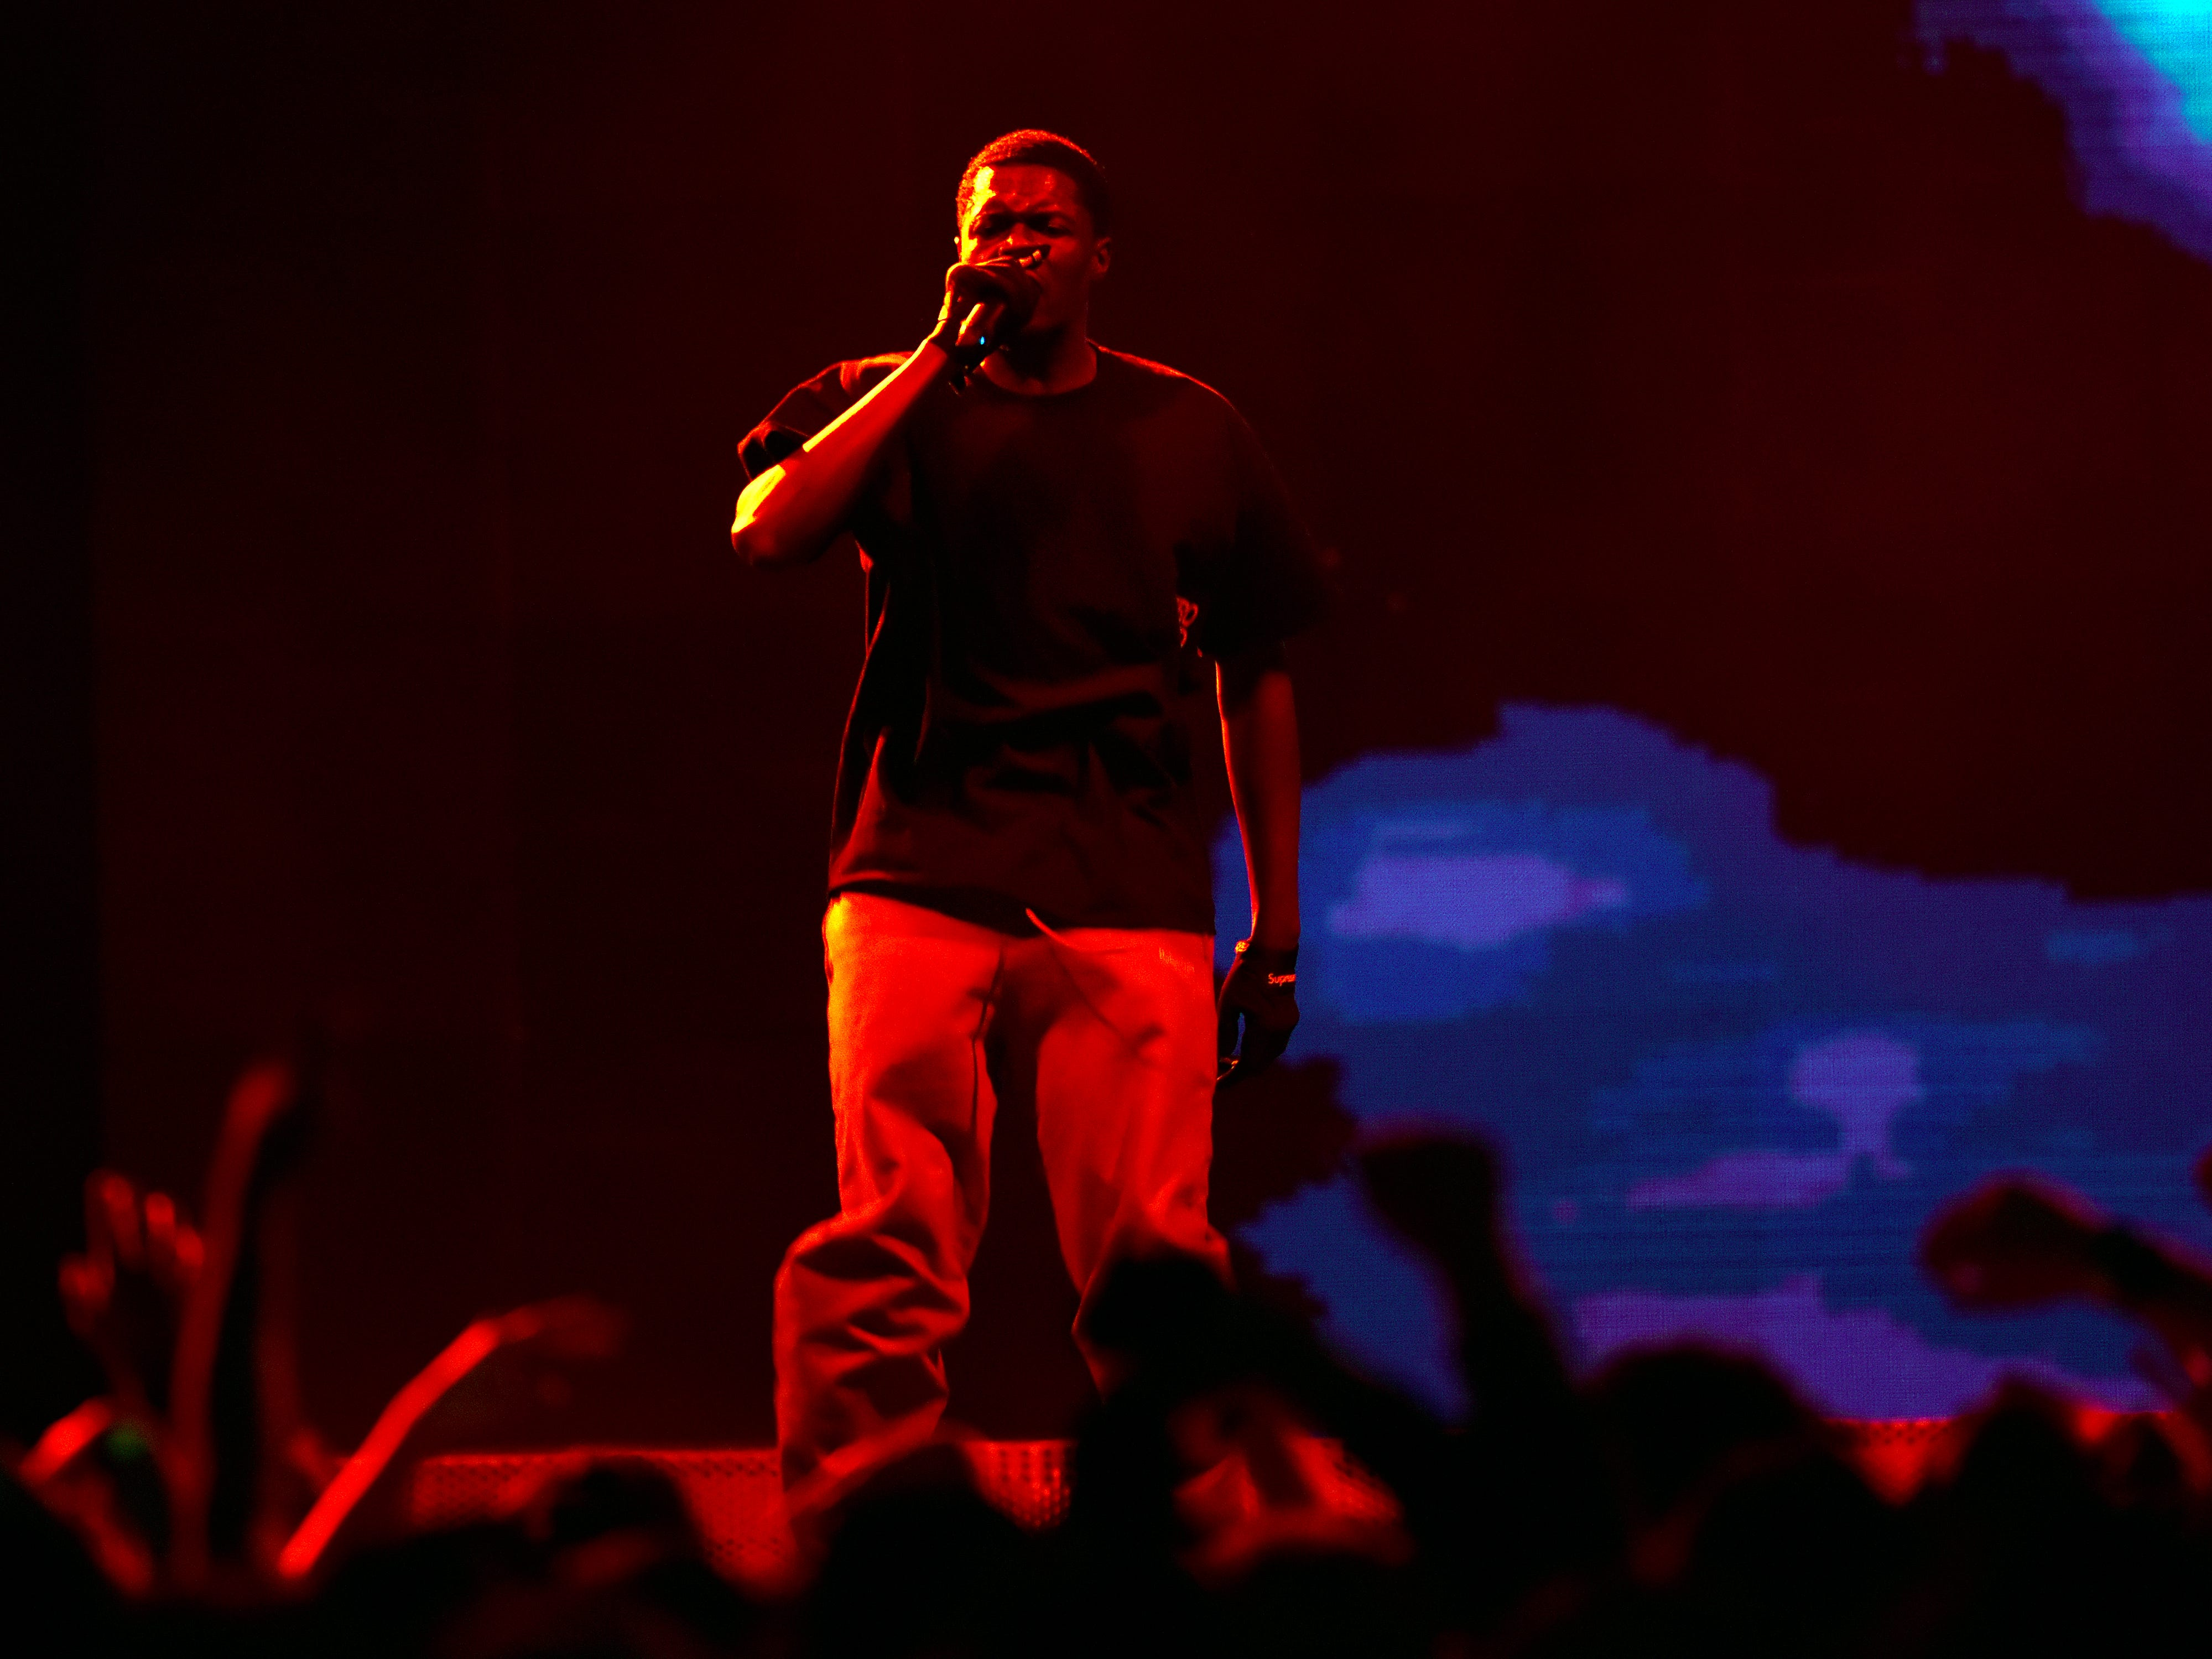 Sheck Wes performs.